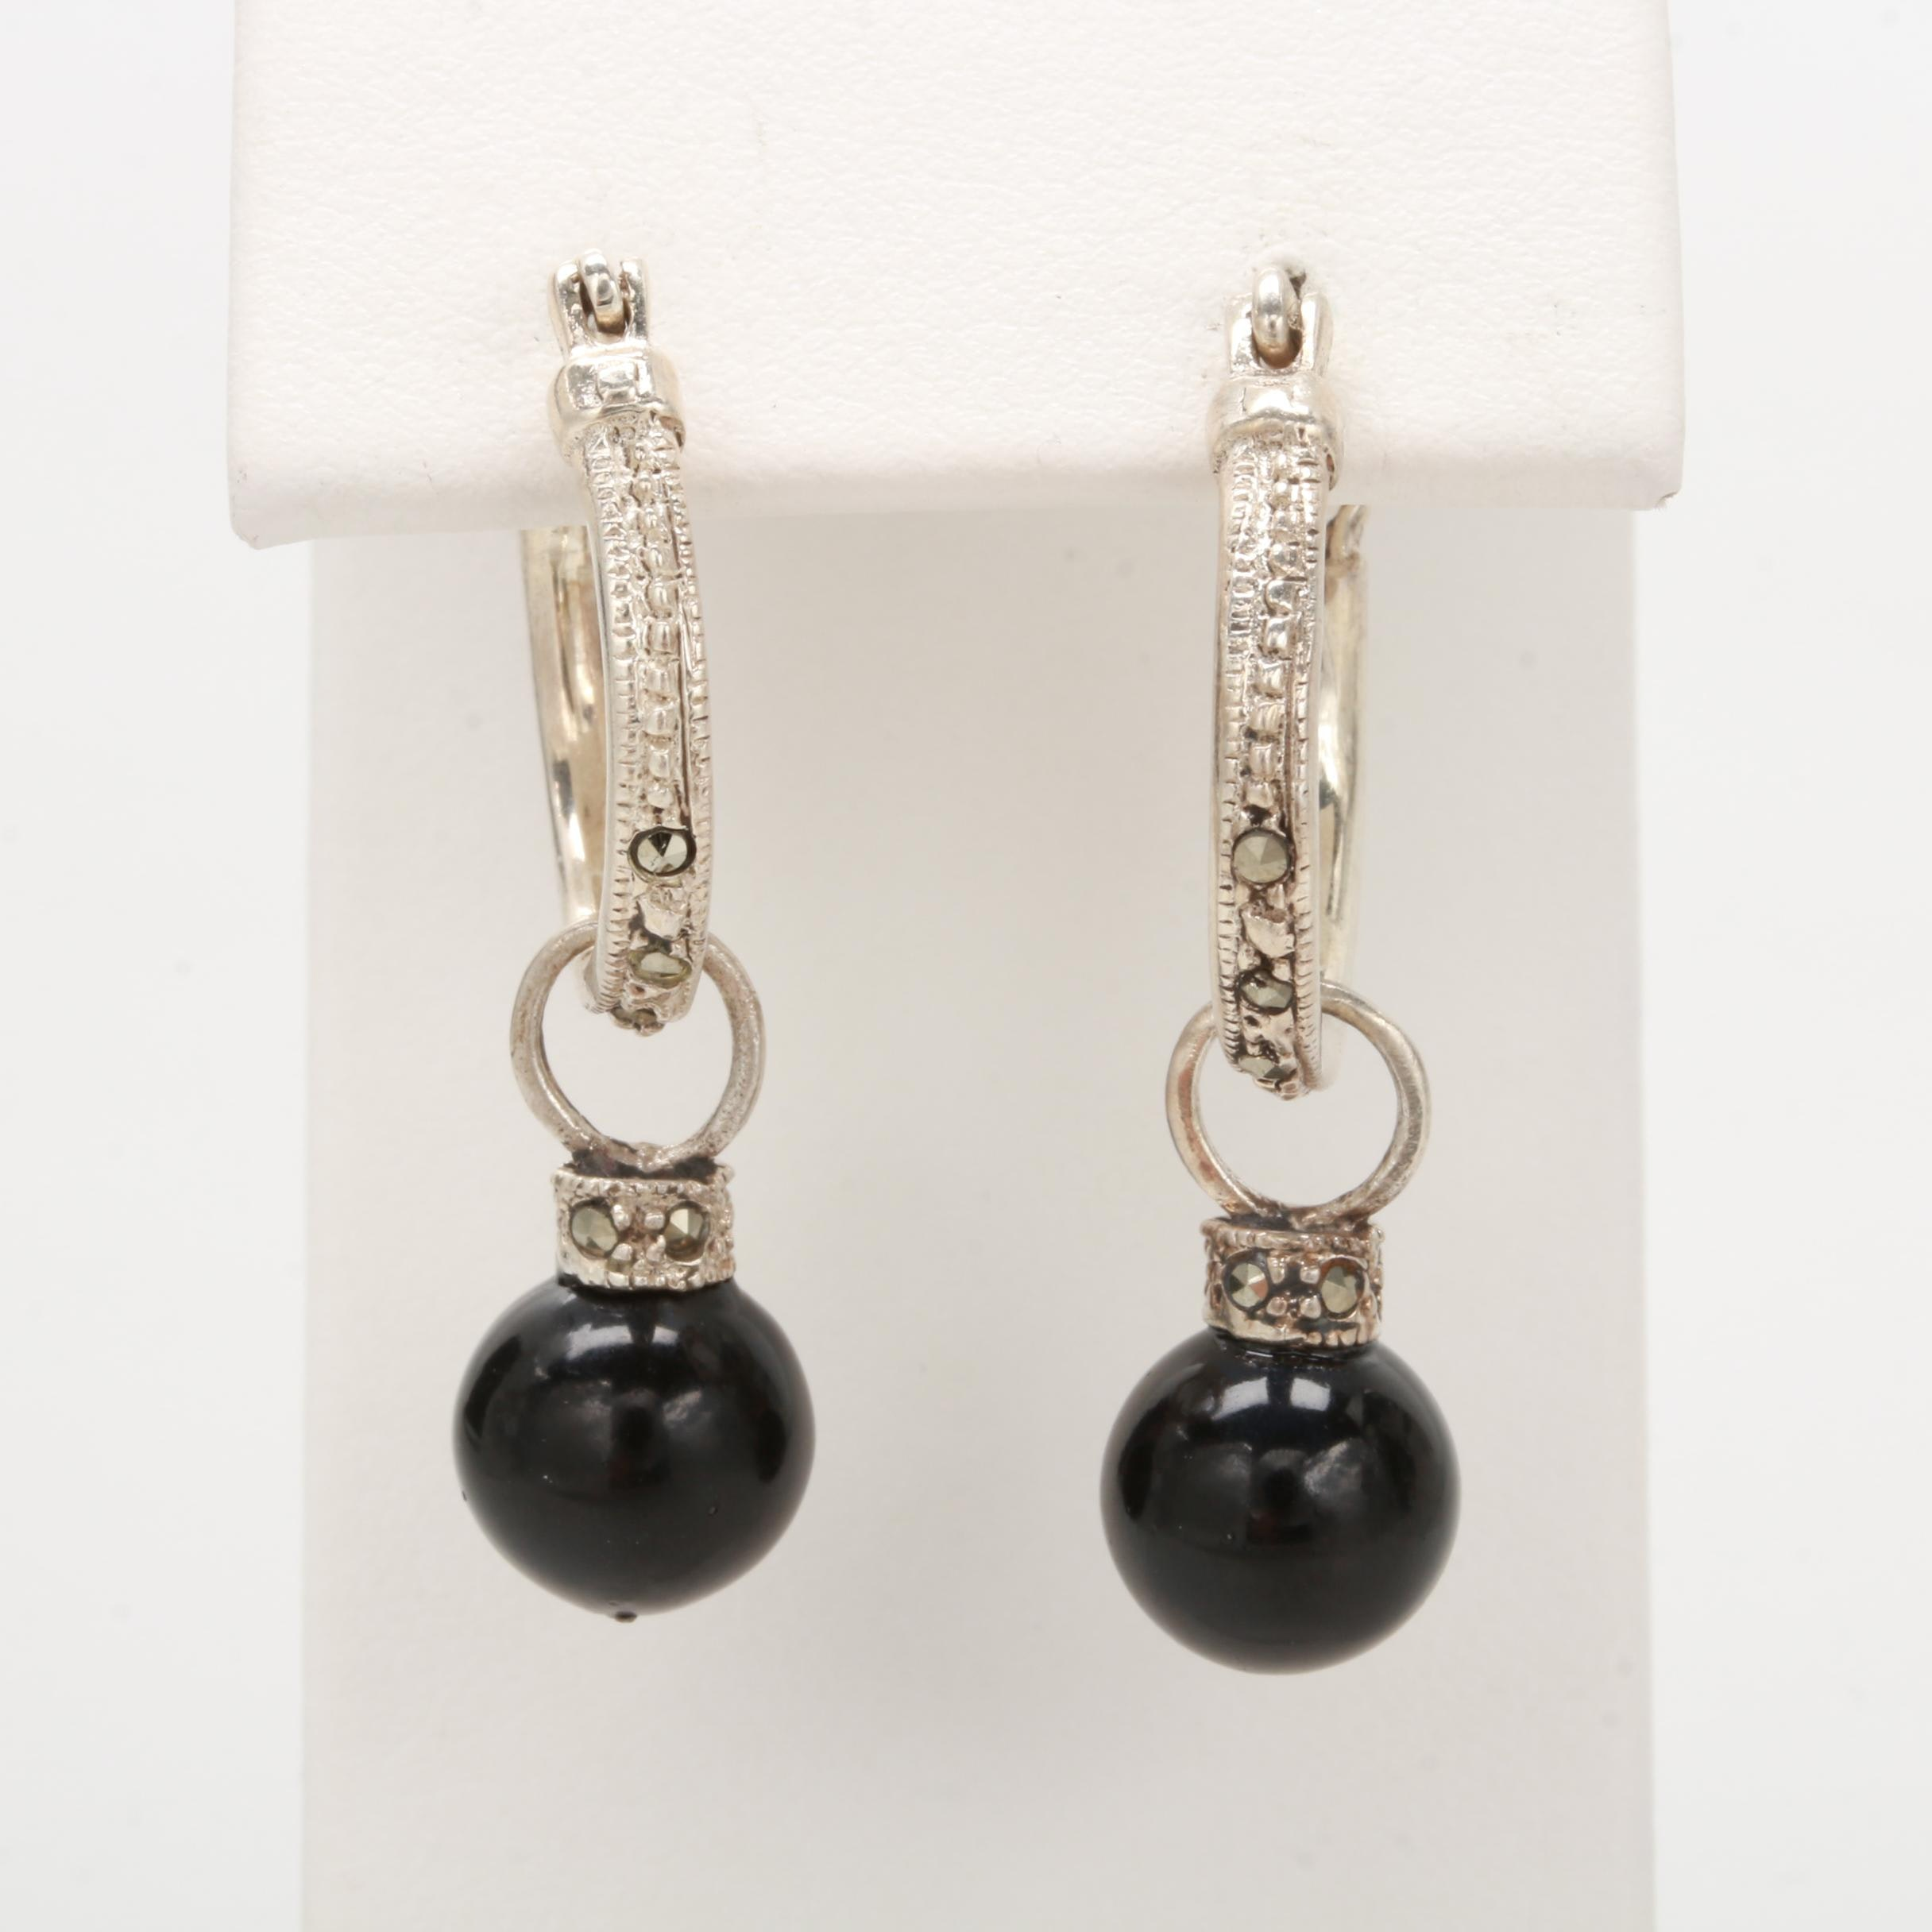 Sterling Silver Resin and Marcasite Earrings